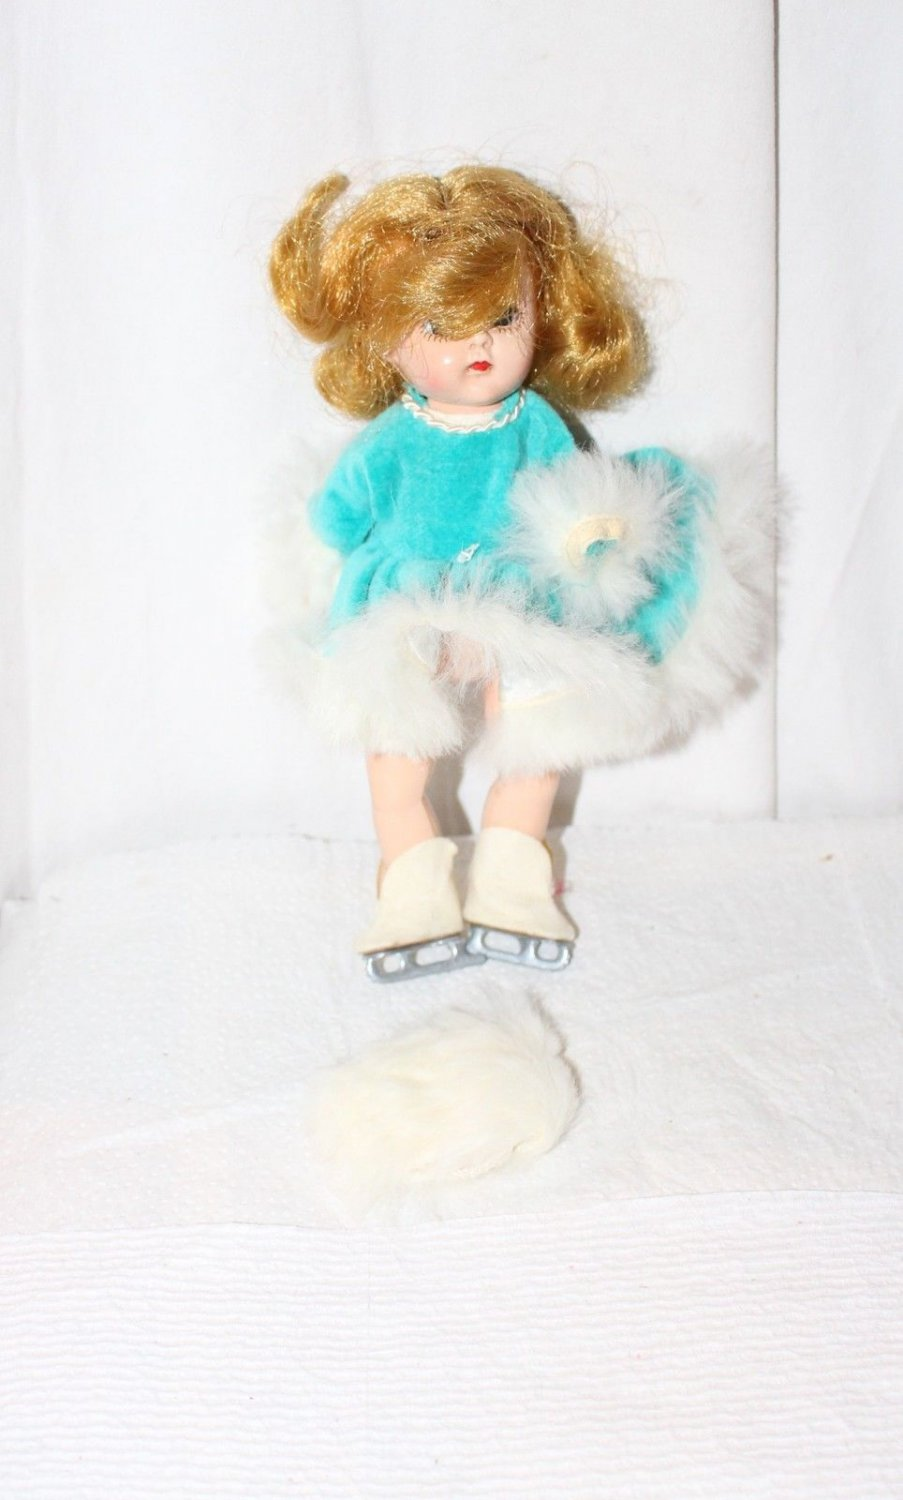 VINTAGE TAGGED COSMOPOLITAN GINGER BLUE SKATING OUTFIT FUR TRIM MUFF FITS GINNY